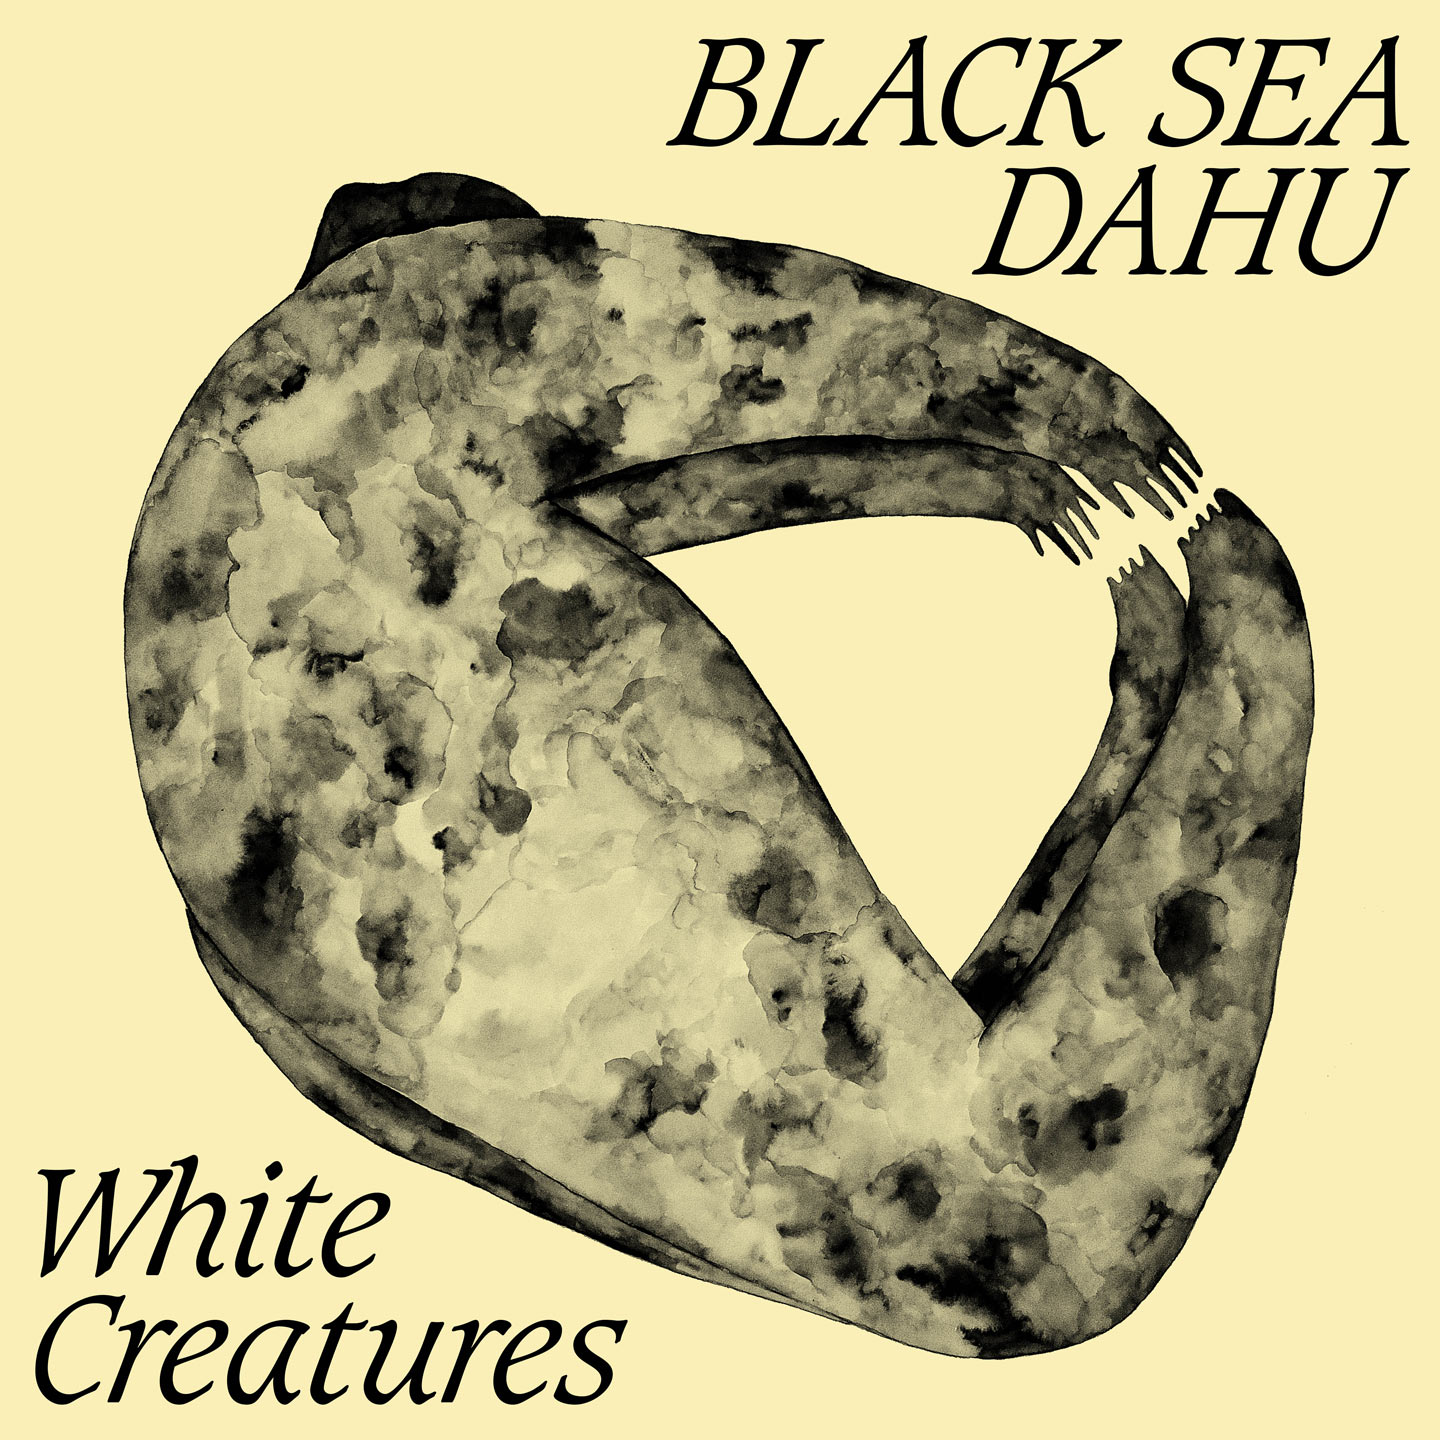 White Creatures by Black Sea Dahu